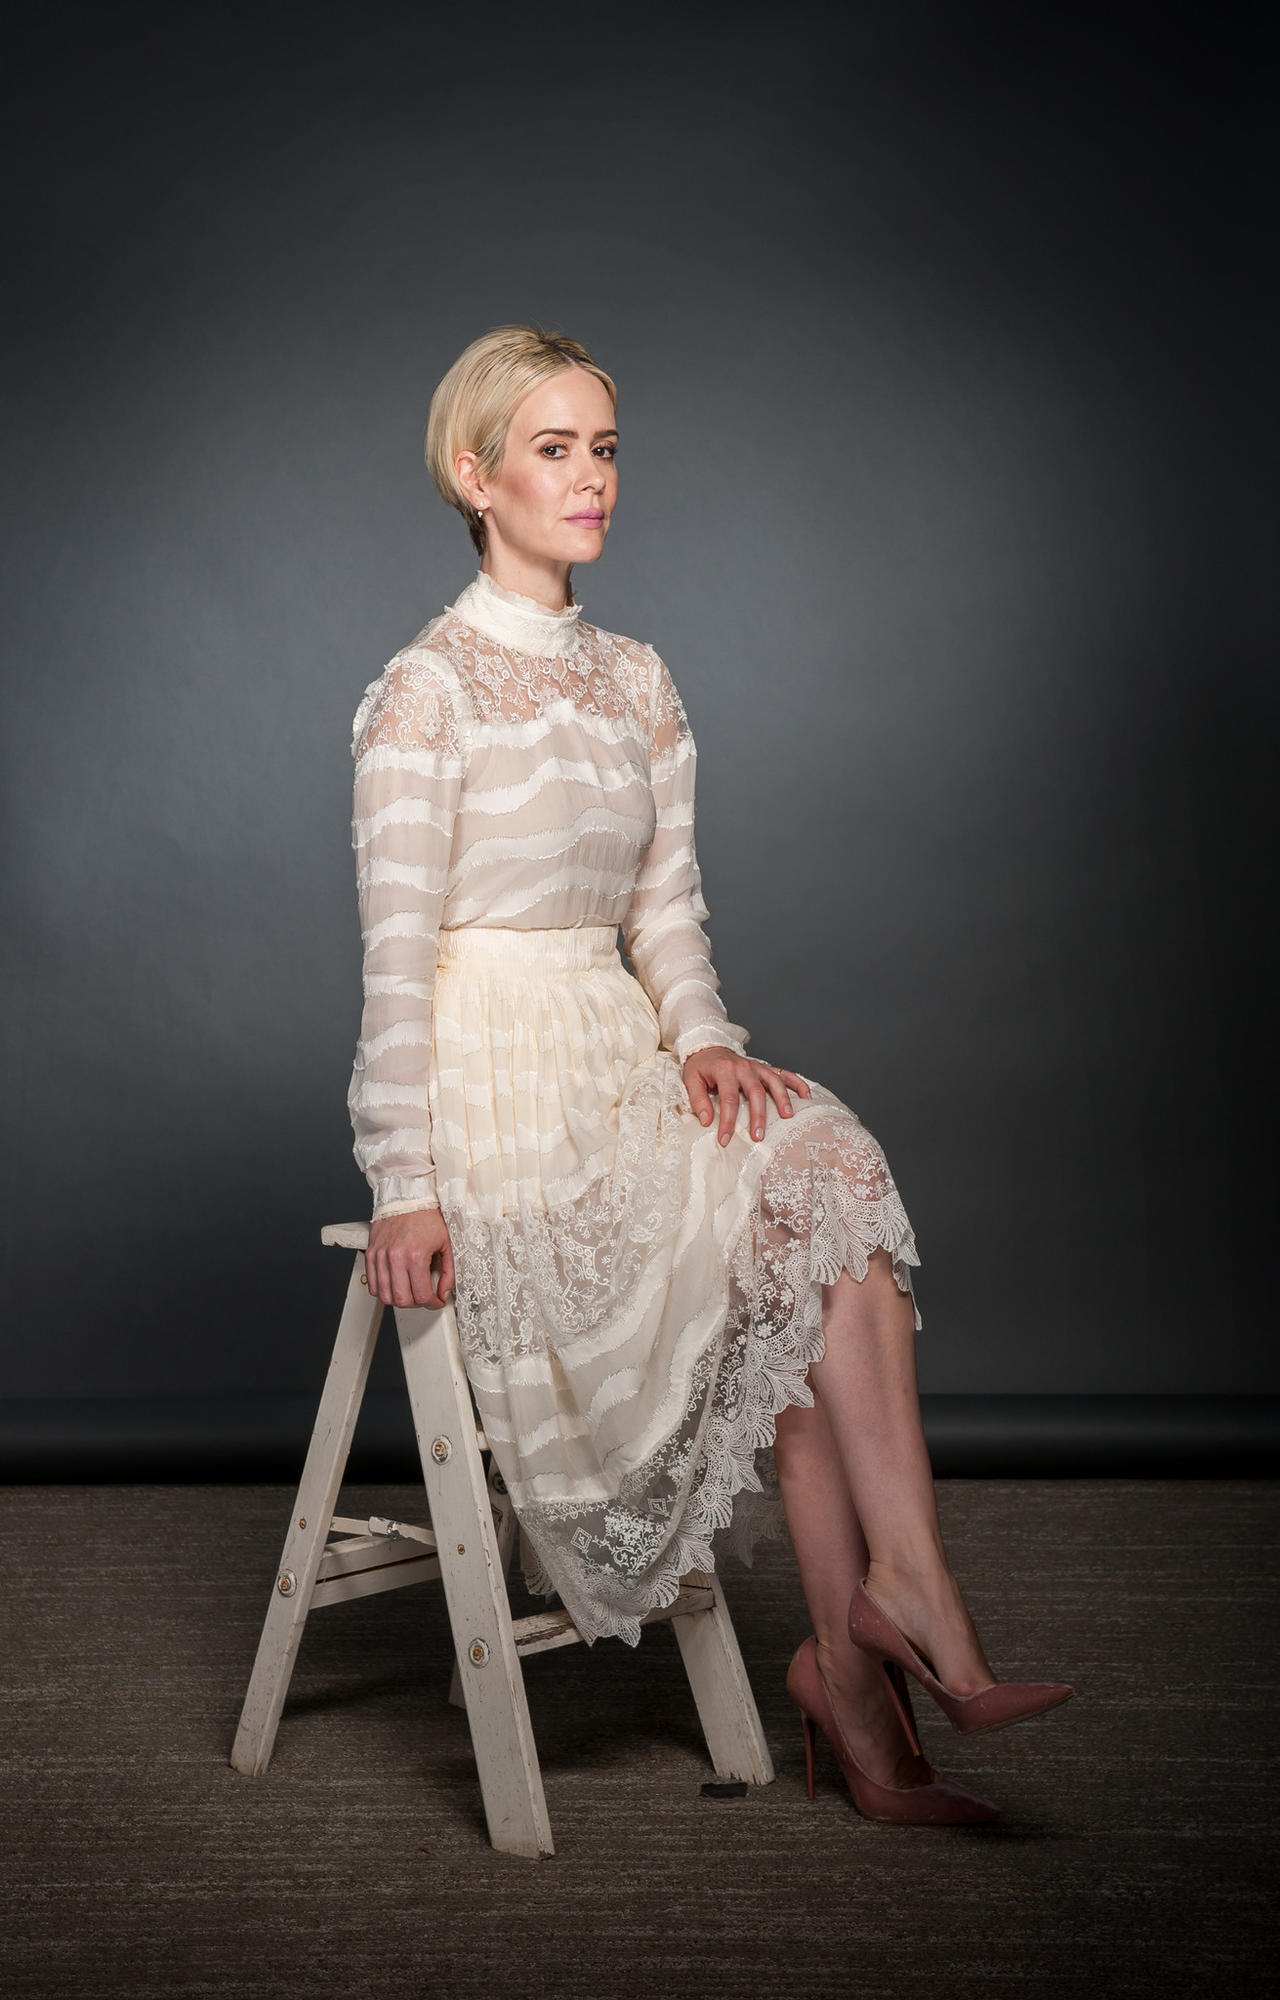 Sarah Paulson, who played Marcia Clark, says filming on the courtroom set in front of background performers was